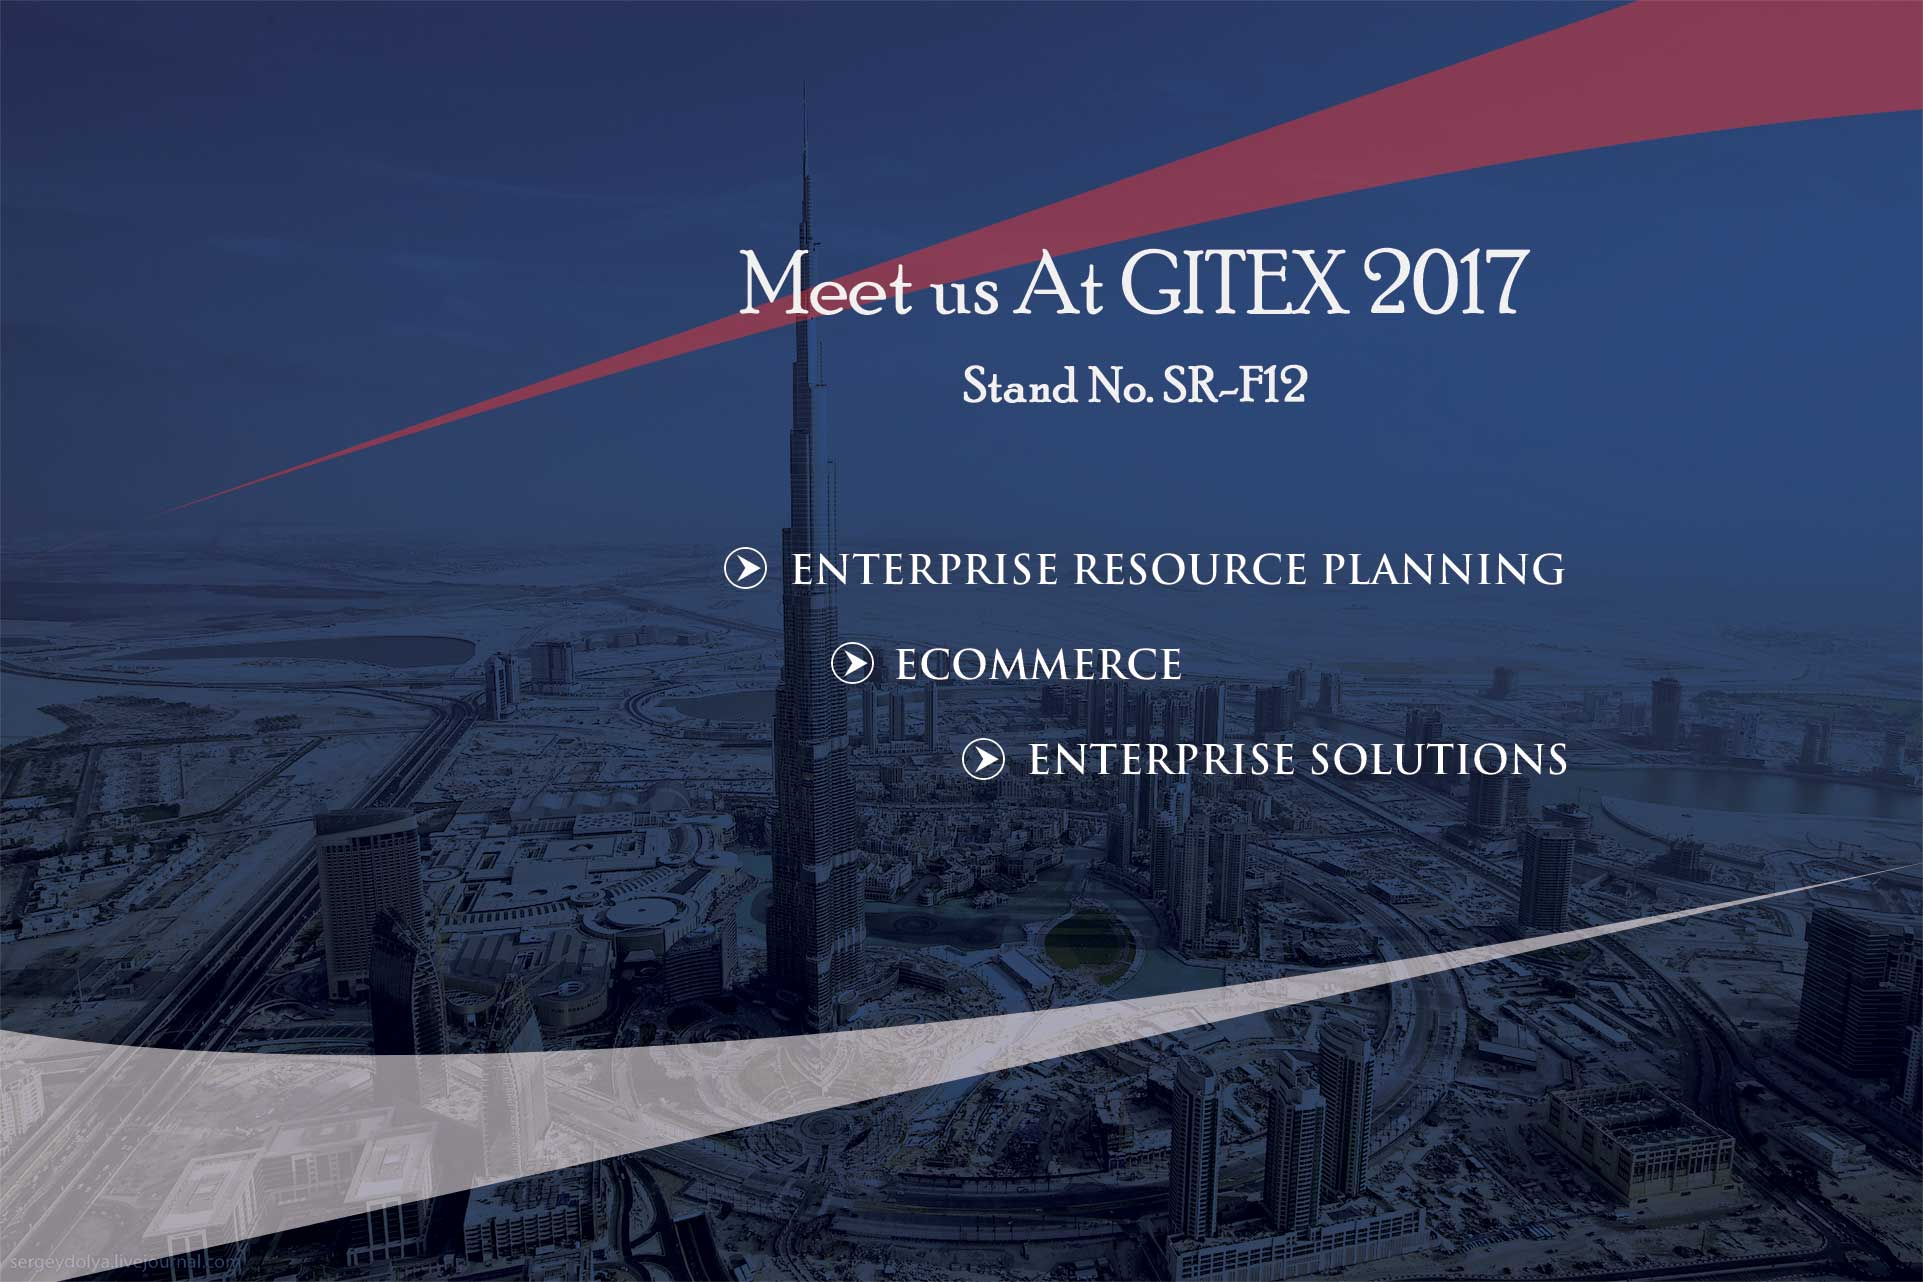 SynergyTop to Exhibit Ecommerce and ERP Proficiency at the GITEX 2017 in Dubai.